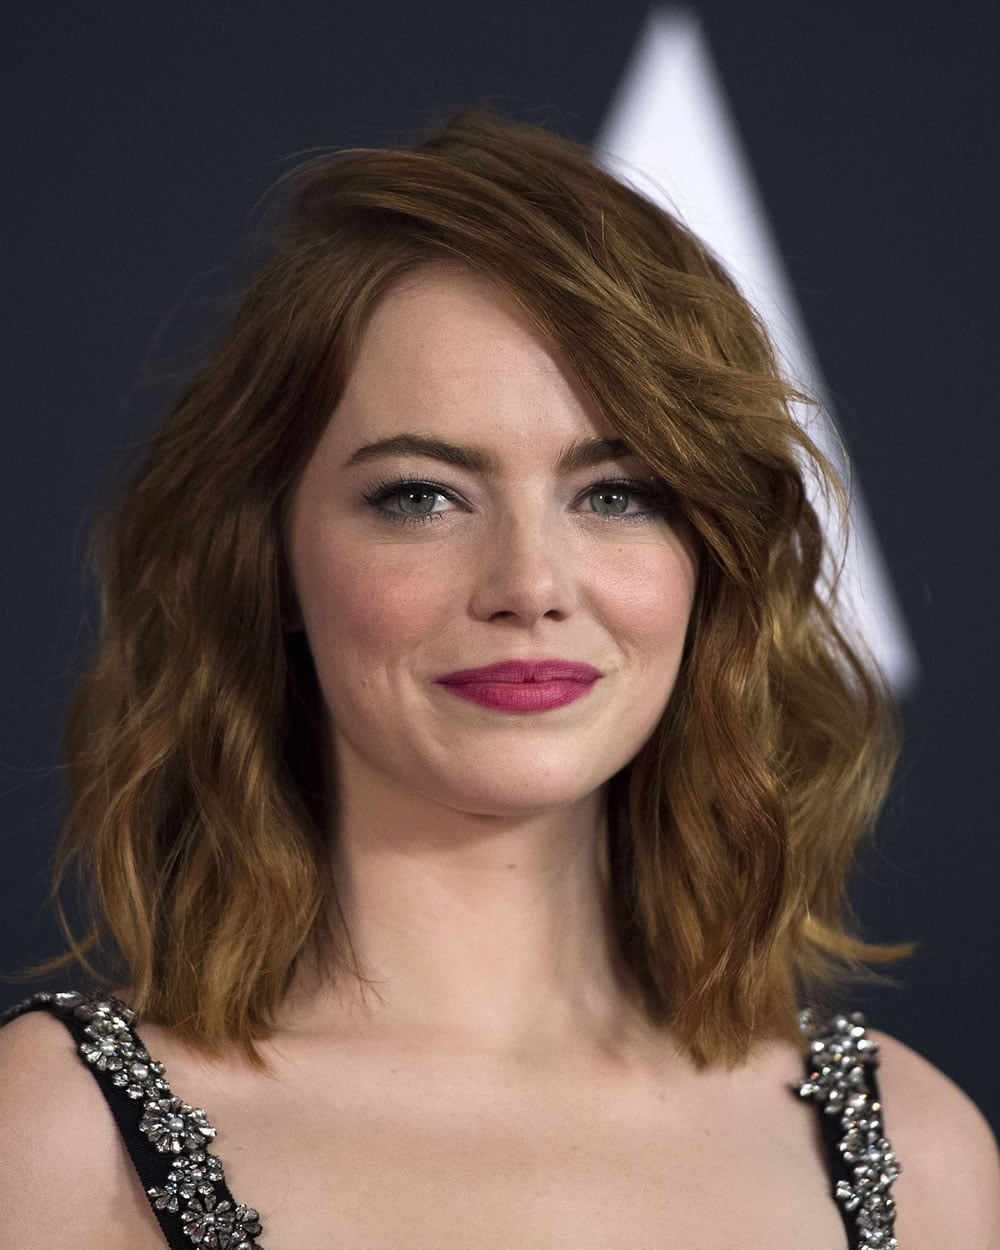 Trendy Hair Color 2019: Short Haircuts 2019 : Pixie And Bob Hairstyles For Short